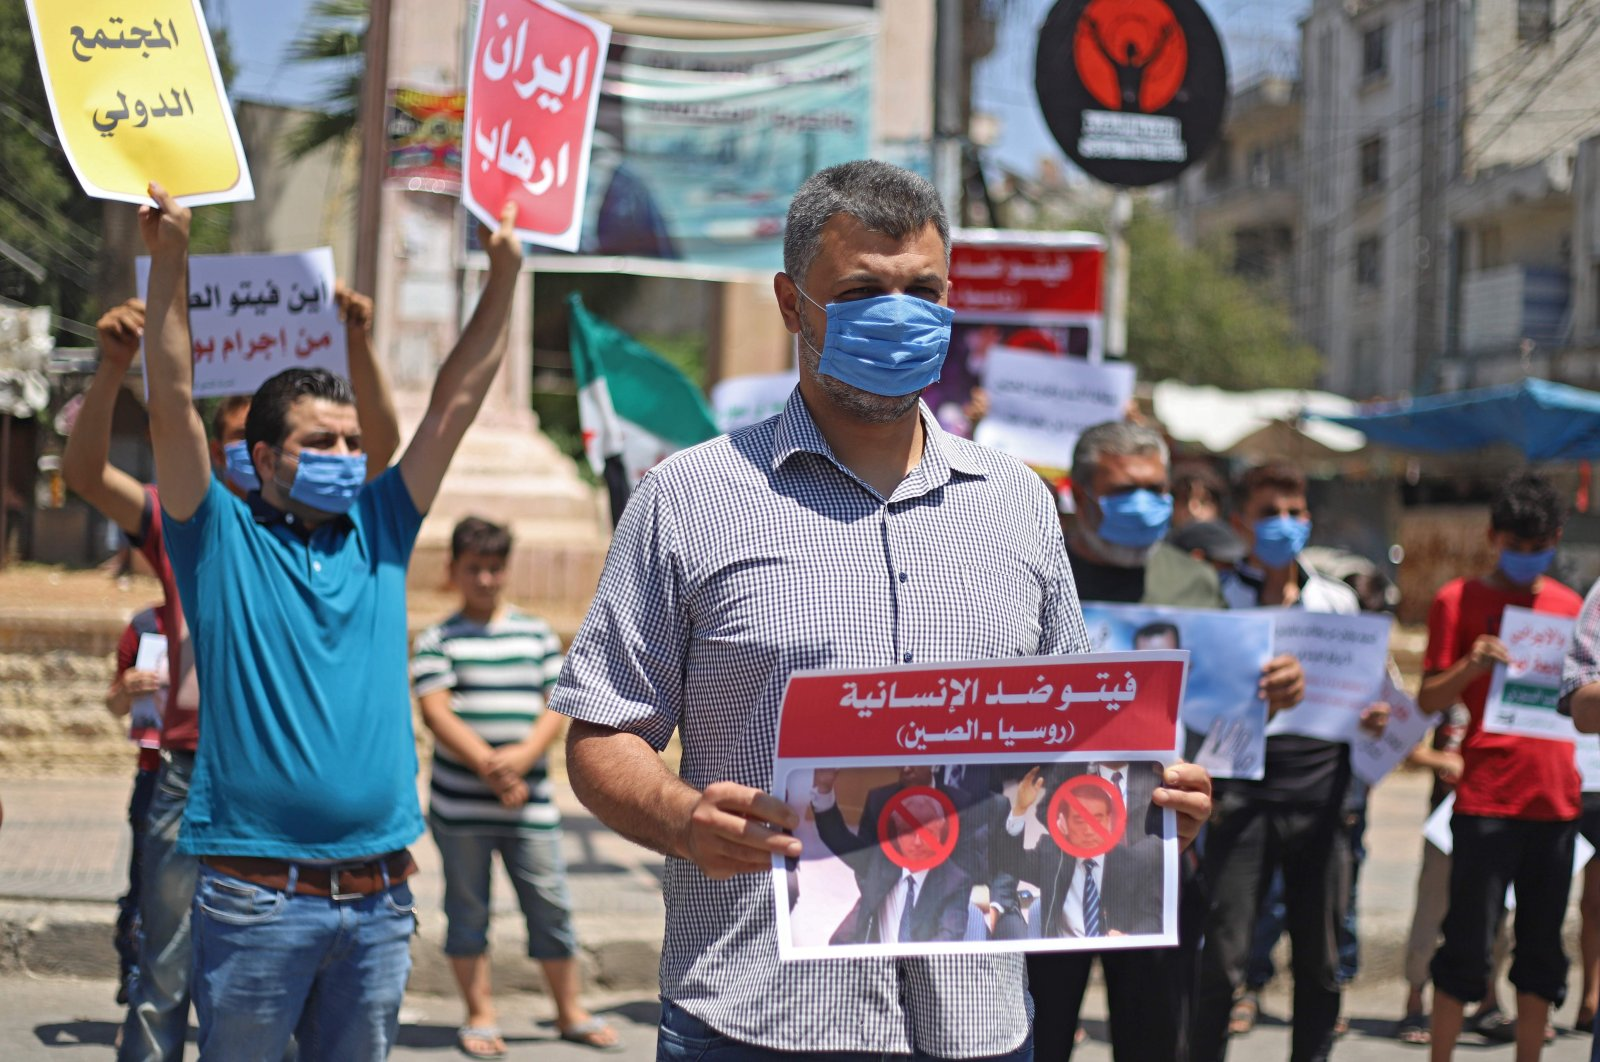 Syrian protesters carry placards expressing their opposition to Russia's attempt to reduce cross-border aid, in Idlib, Syria, July 10, 2020. (AFP Photo)